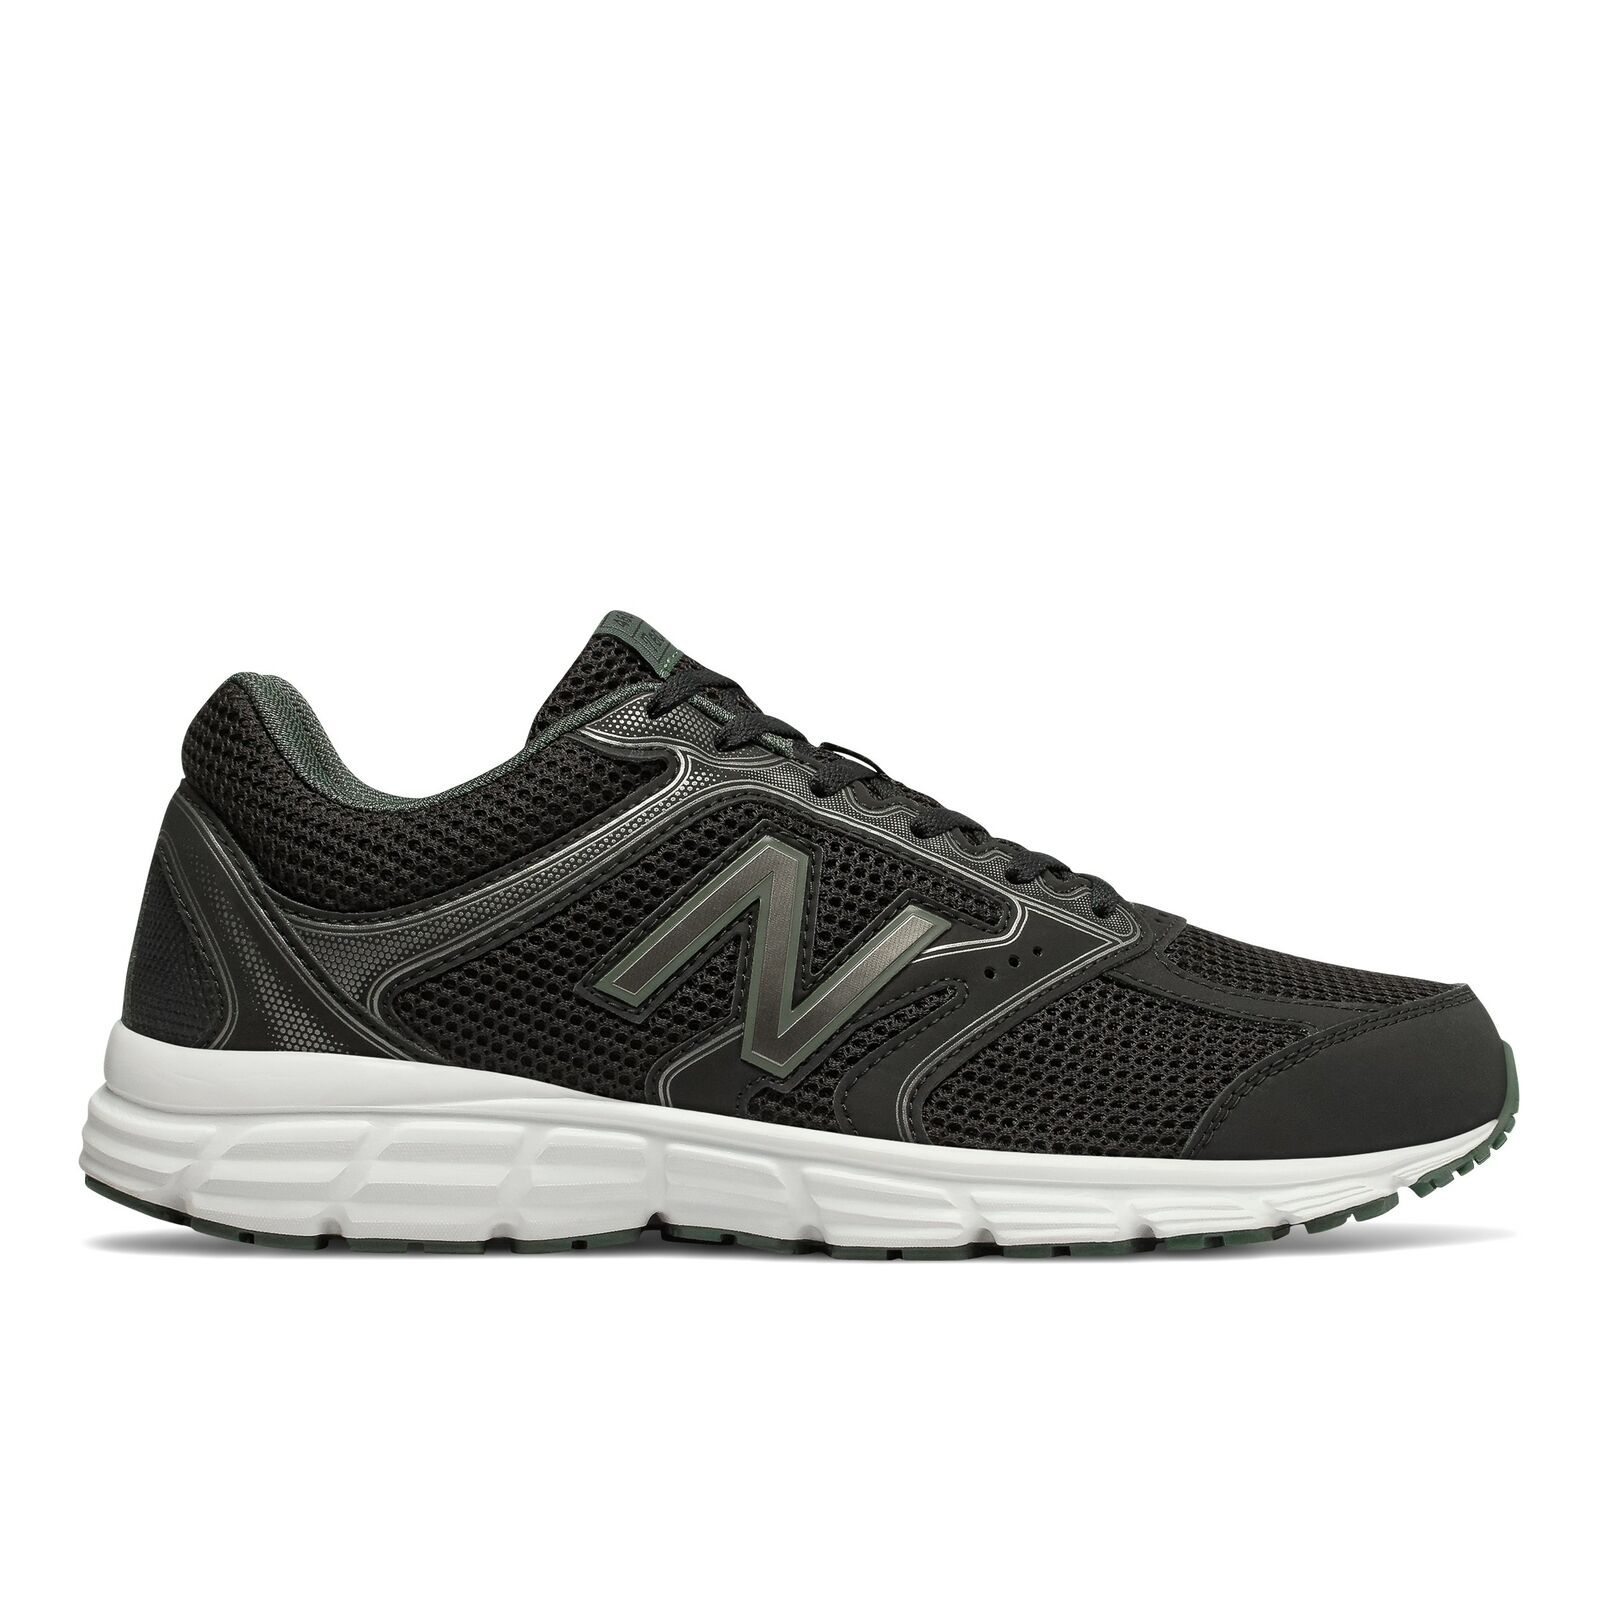 New Balance 460v2 Mens Sneakers shoes Black with Faded Rosin M460-V2